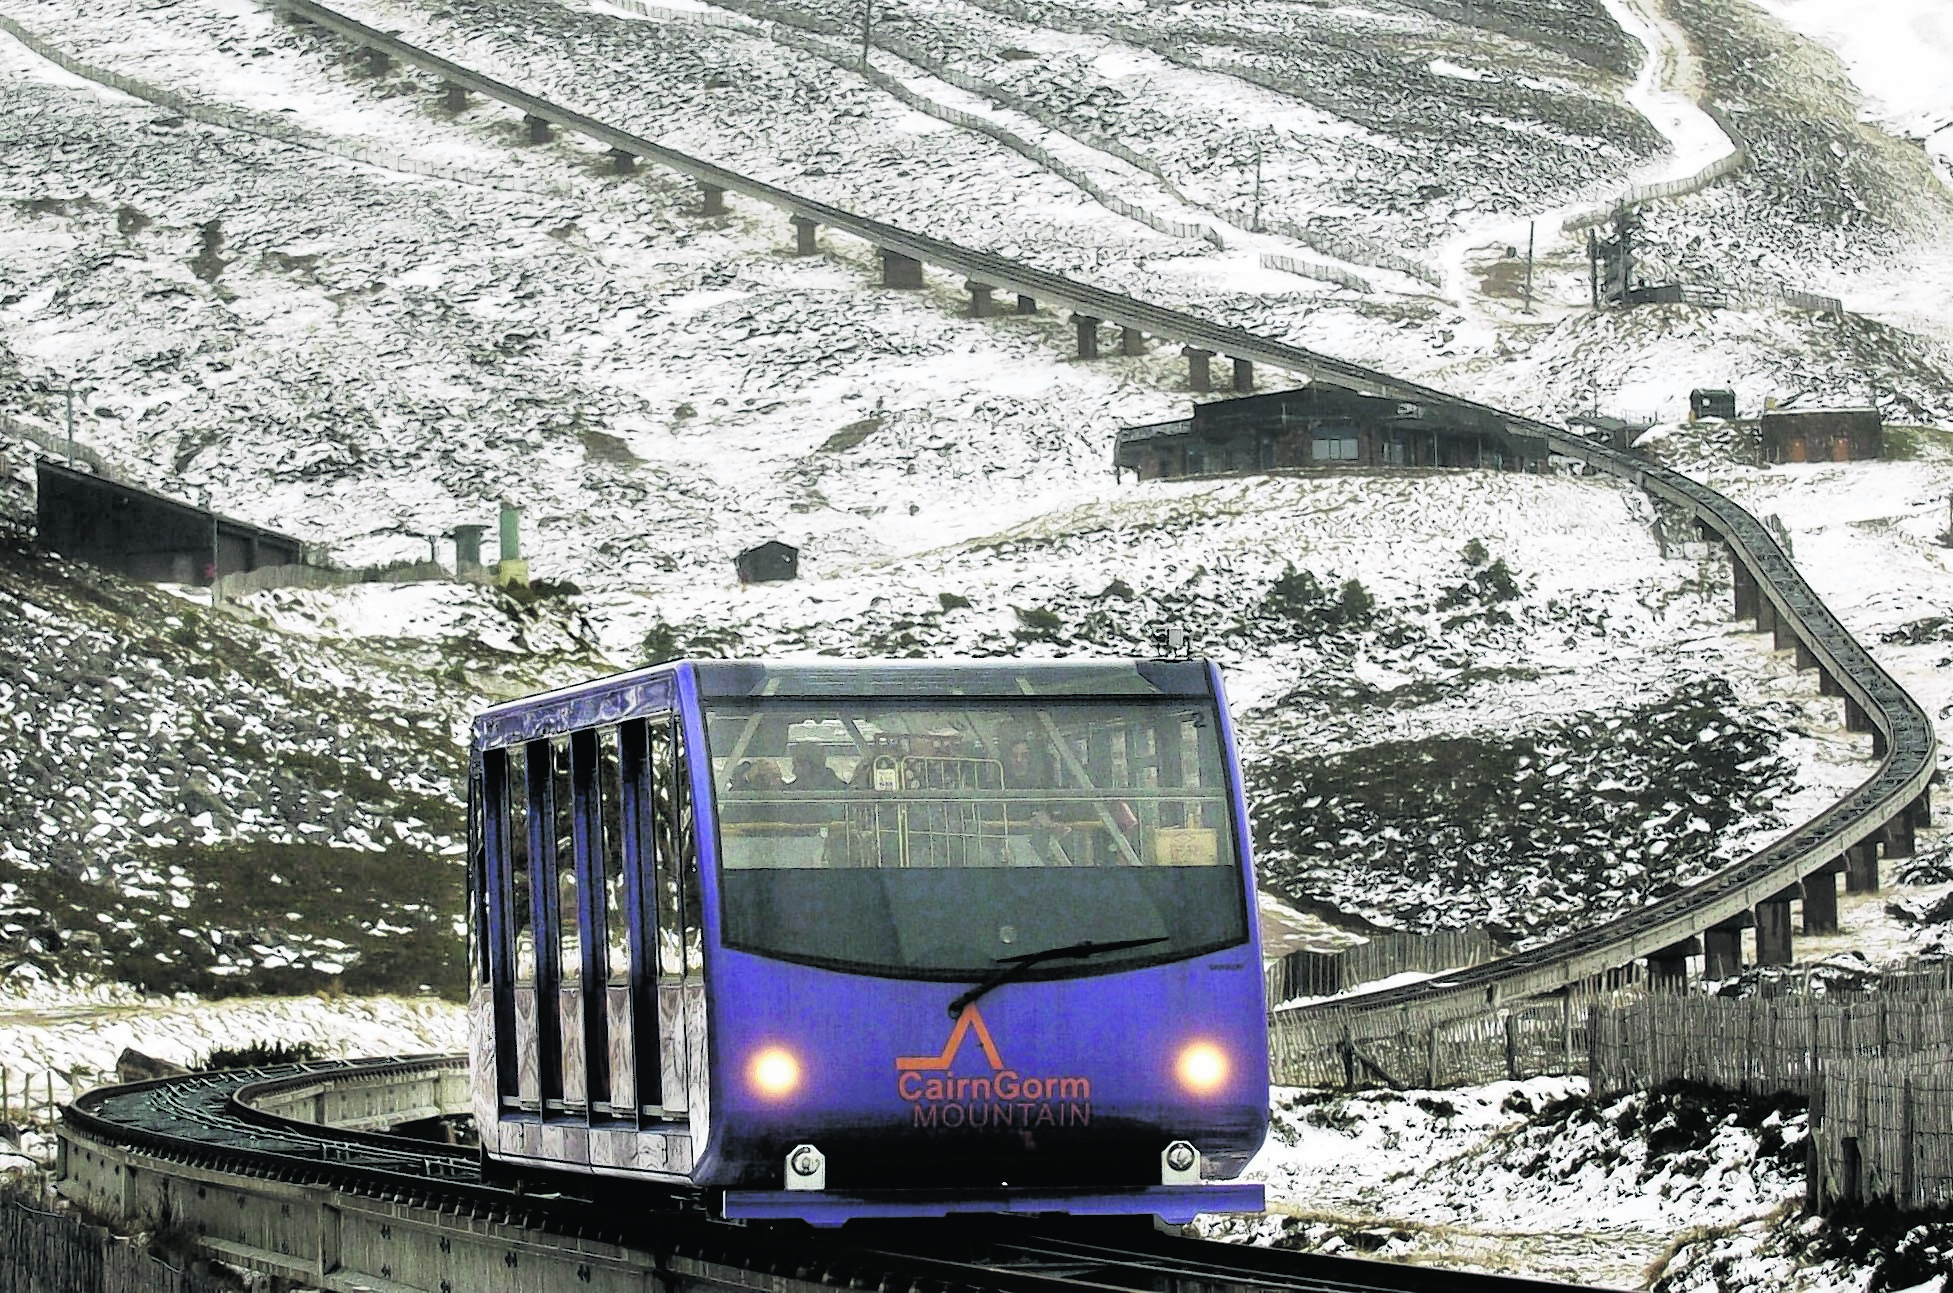 CairnGorm, Scotland's only mountain railway